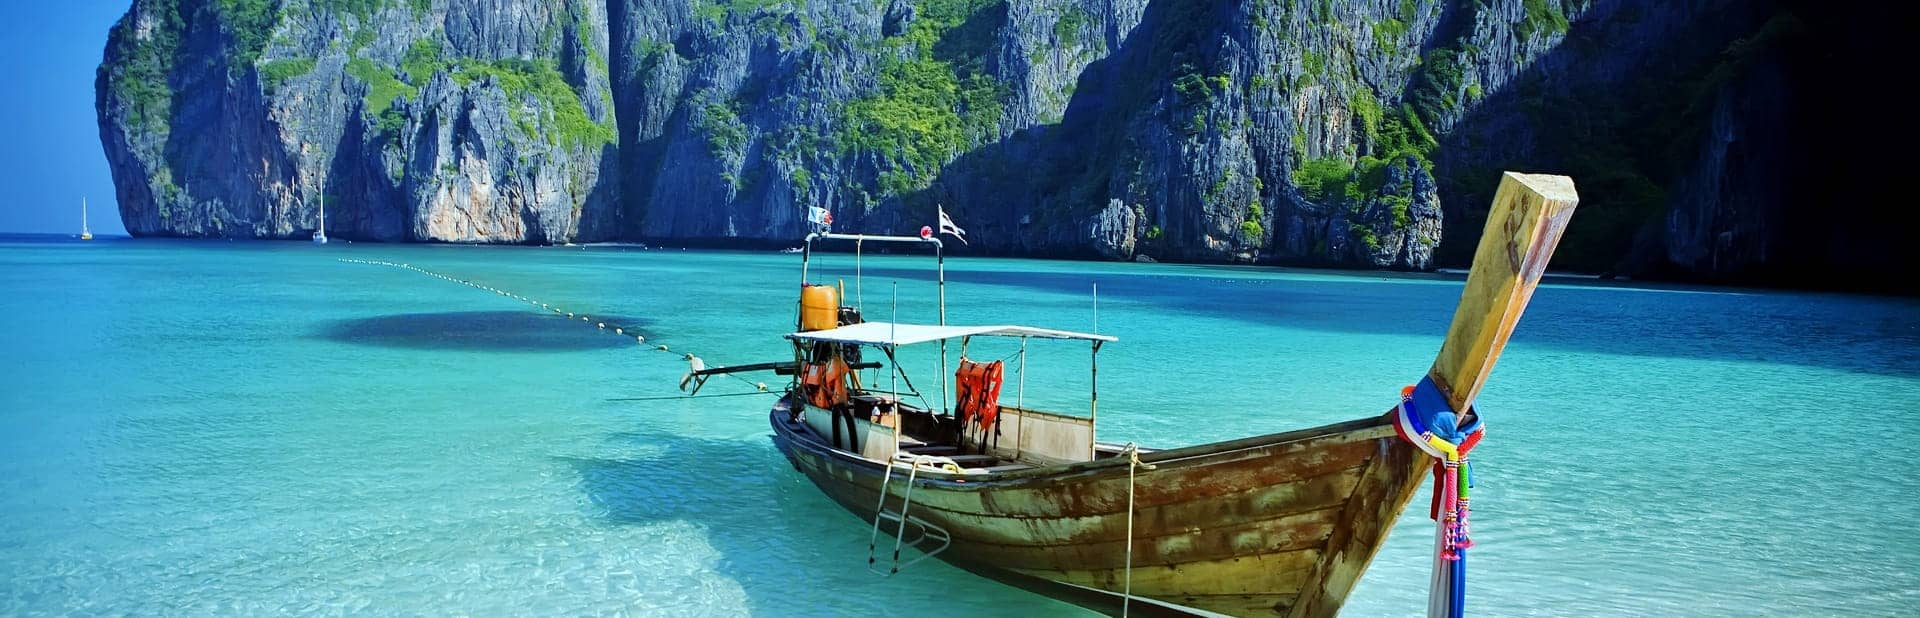 Phuket Tours, Day Trips and Excursions starting at ฿ 550